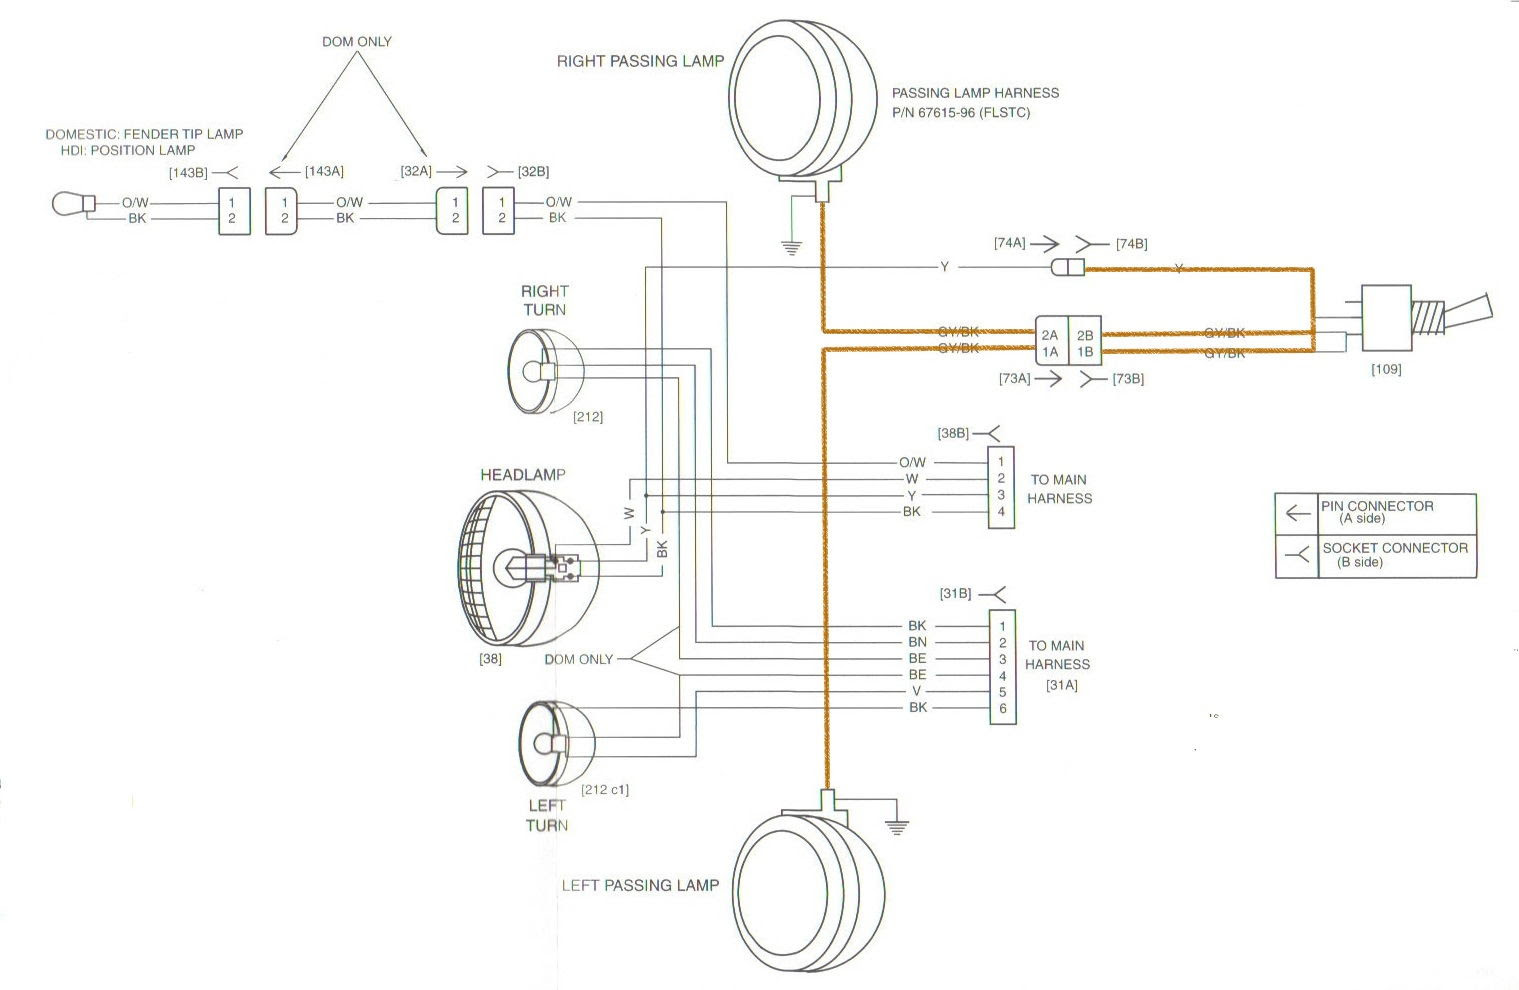 Wiring Diagram PDF: 2003 Harley Davidson Road King Wiring